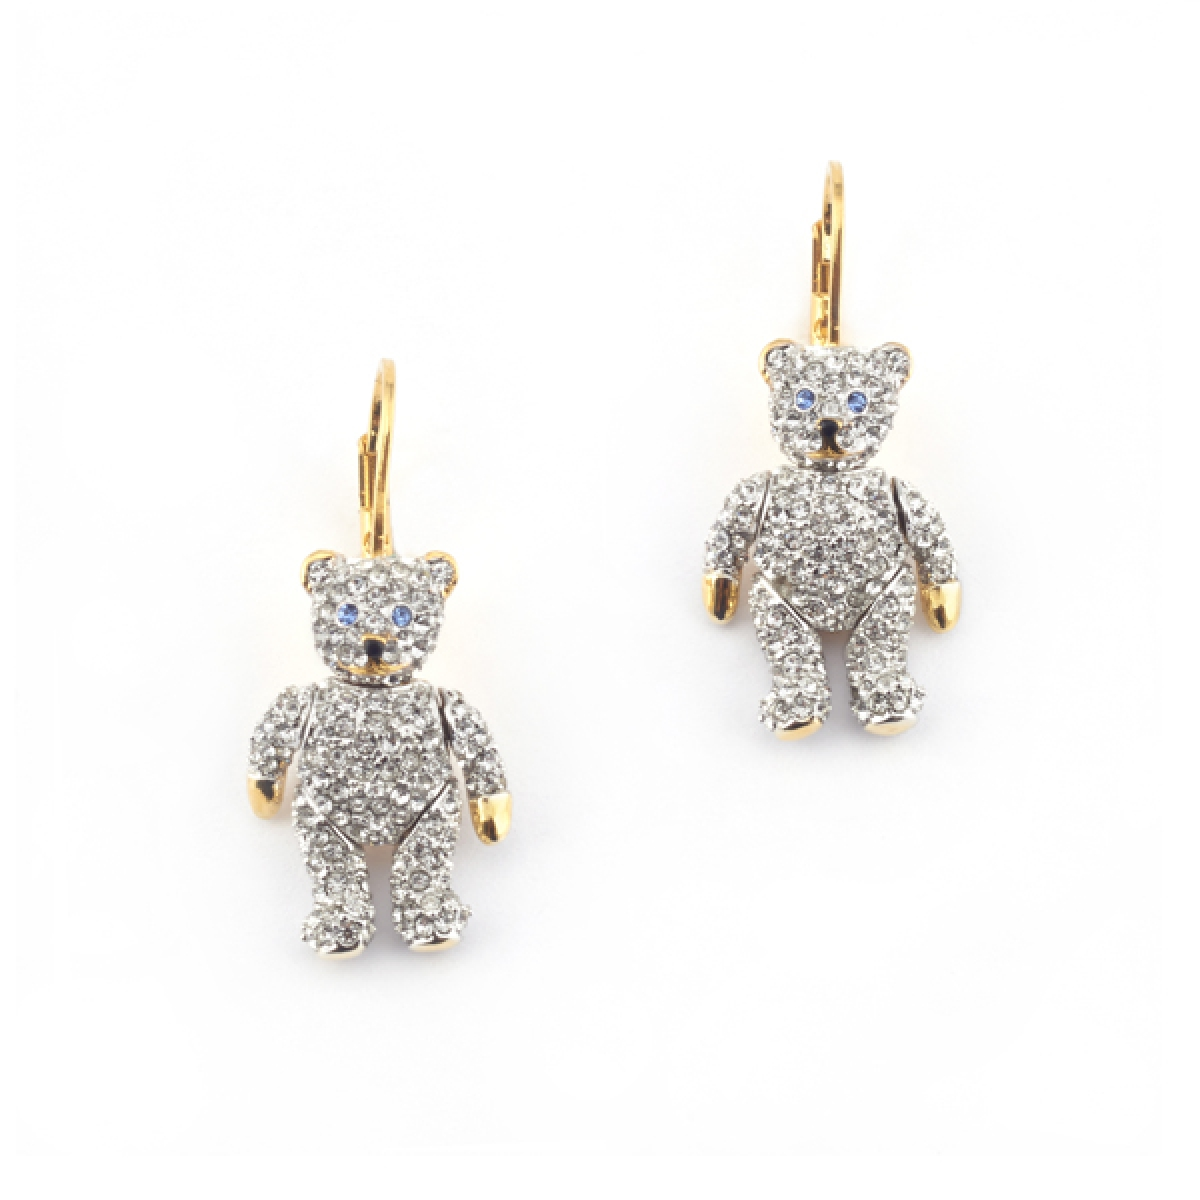 Teddy Earrings